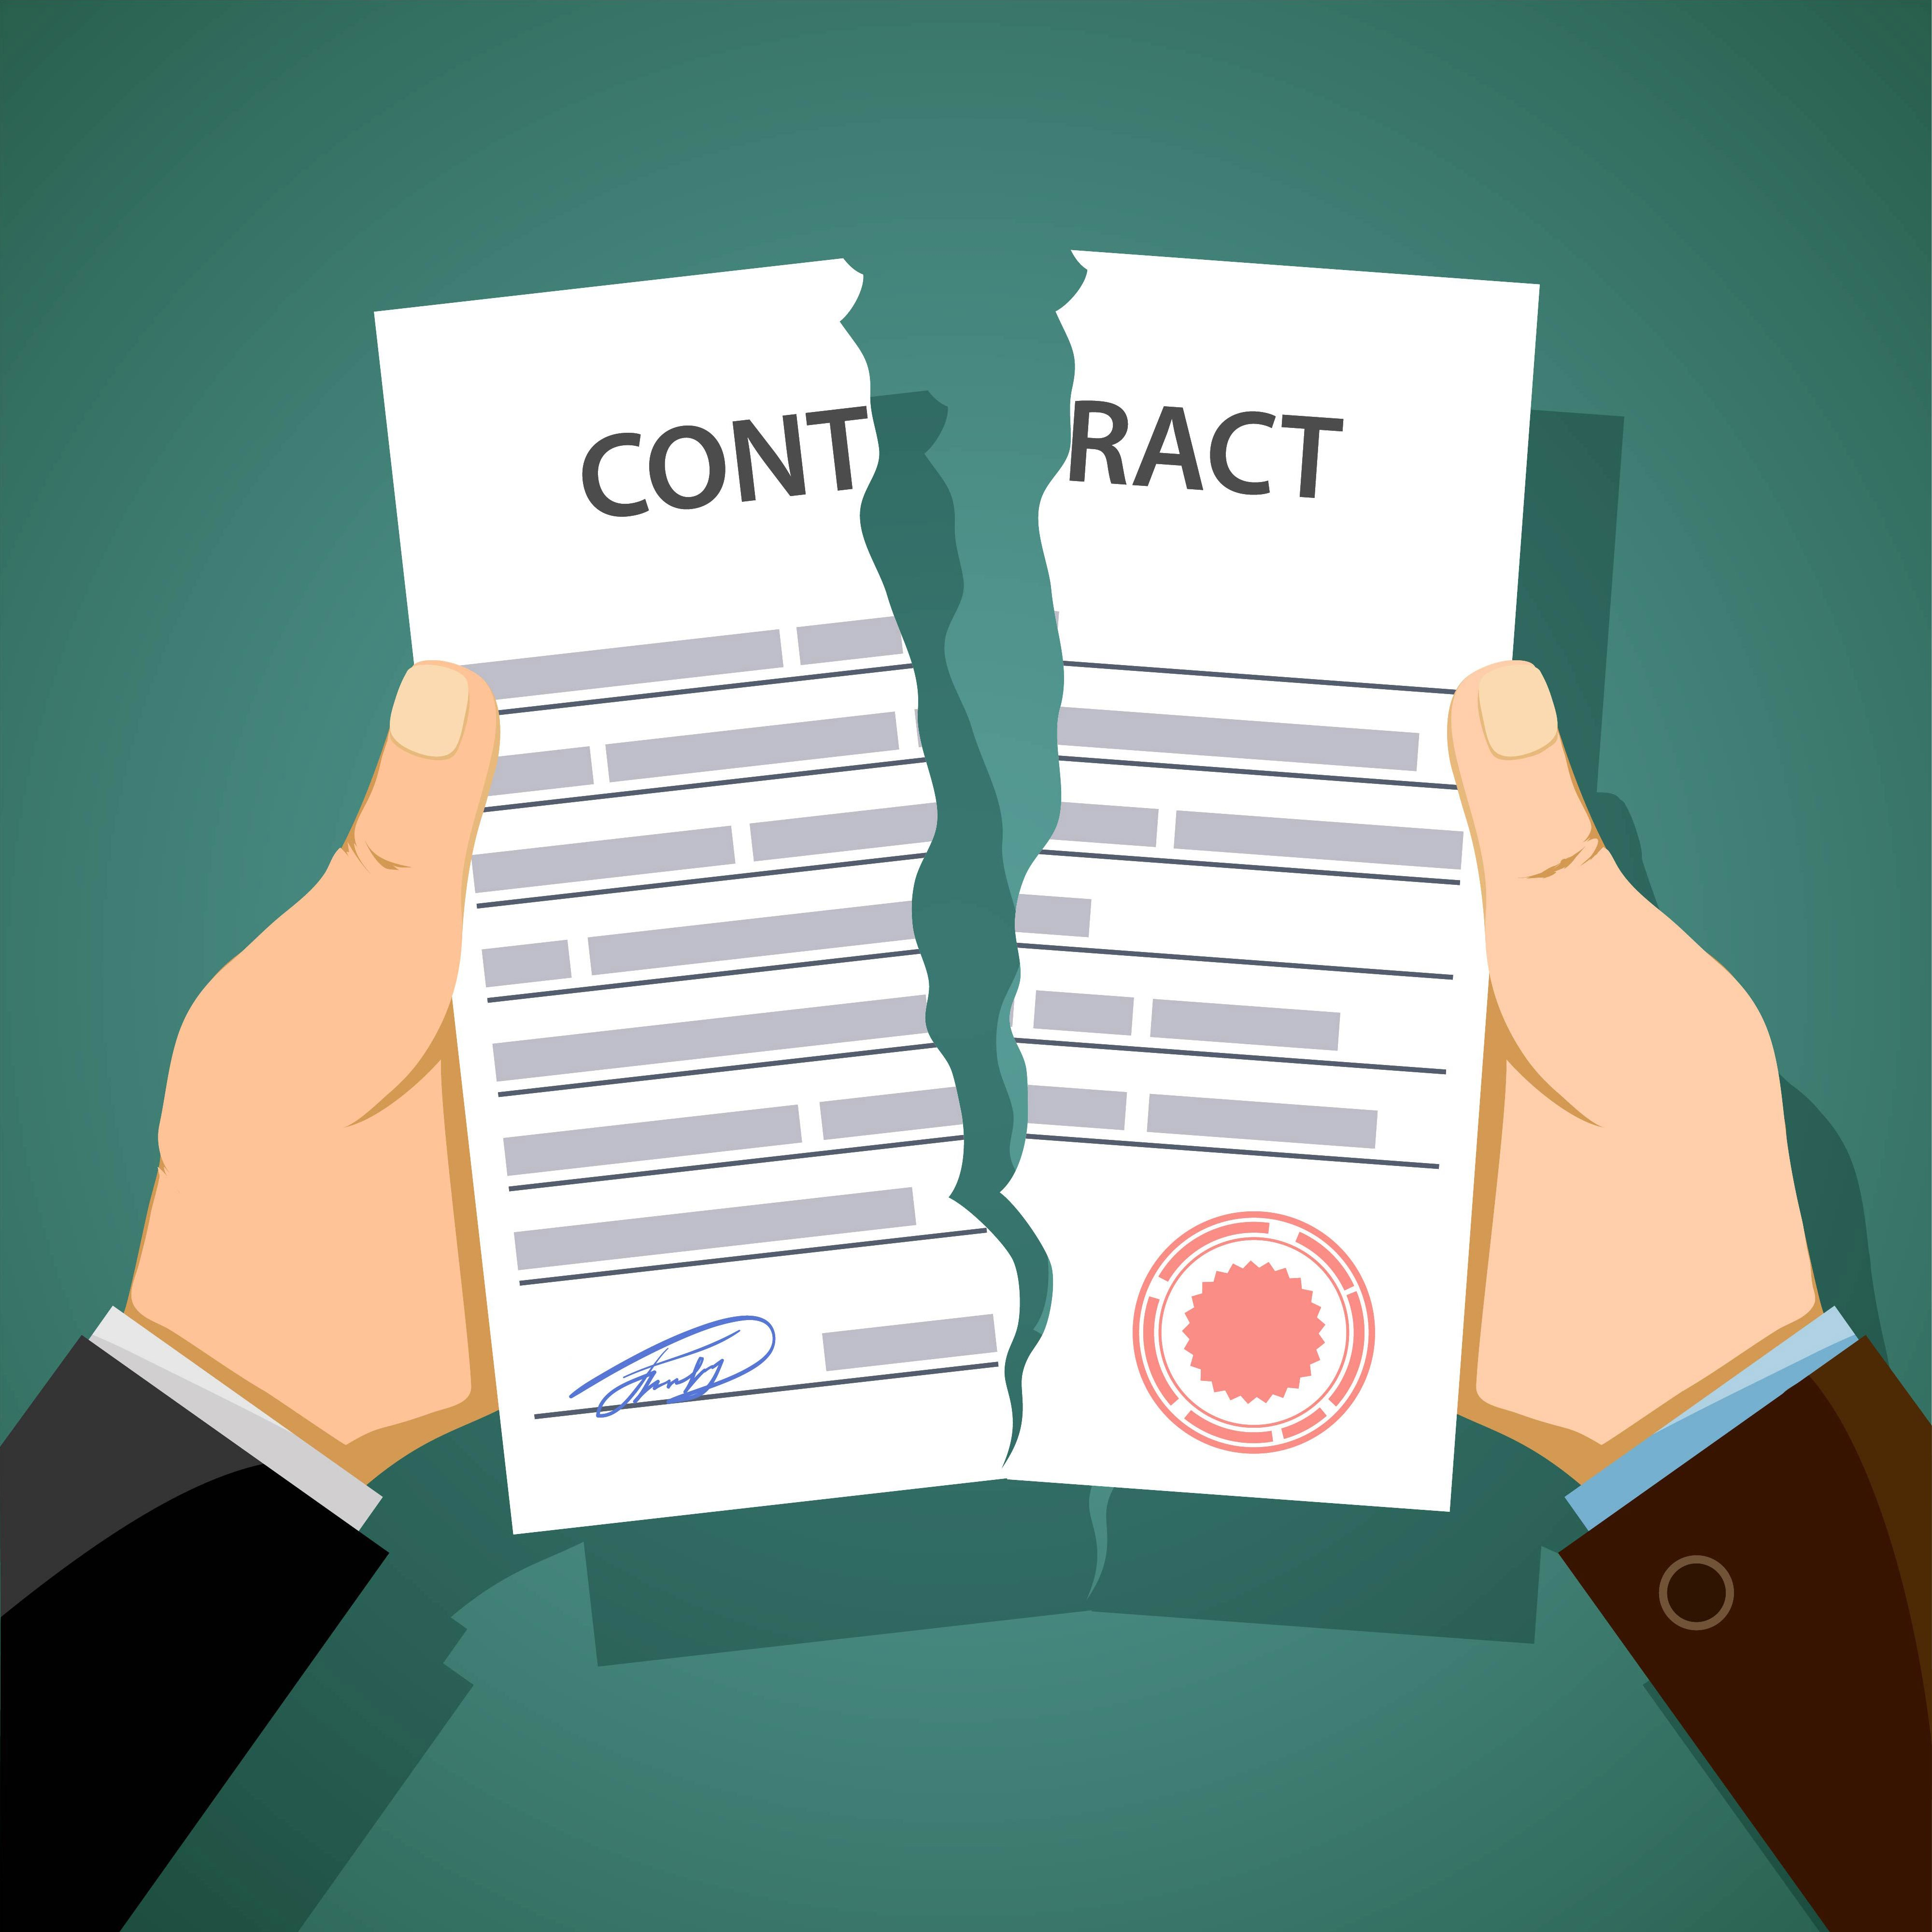 Tearing a contract